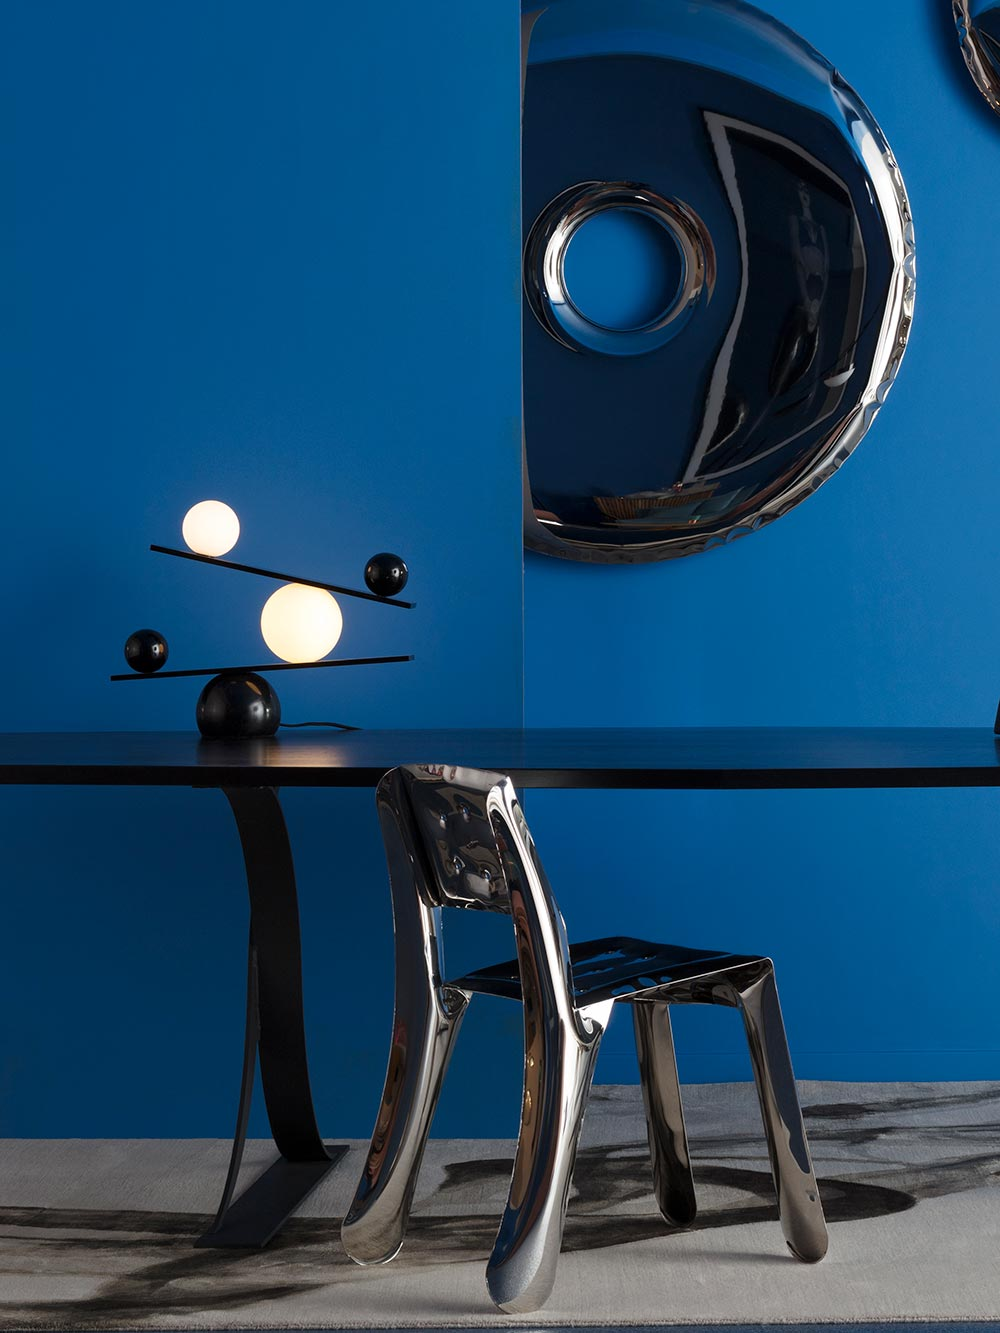 Oblure_Balance-Table-Lamp-Victor-Castanera-SP